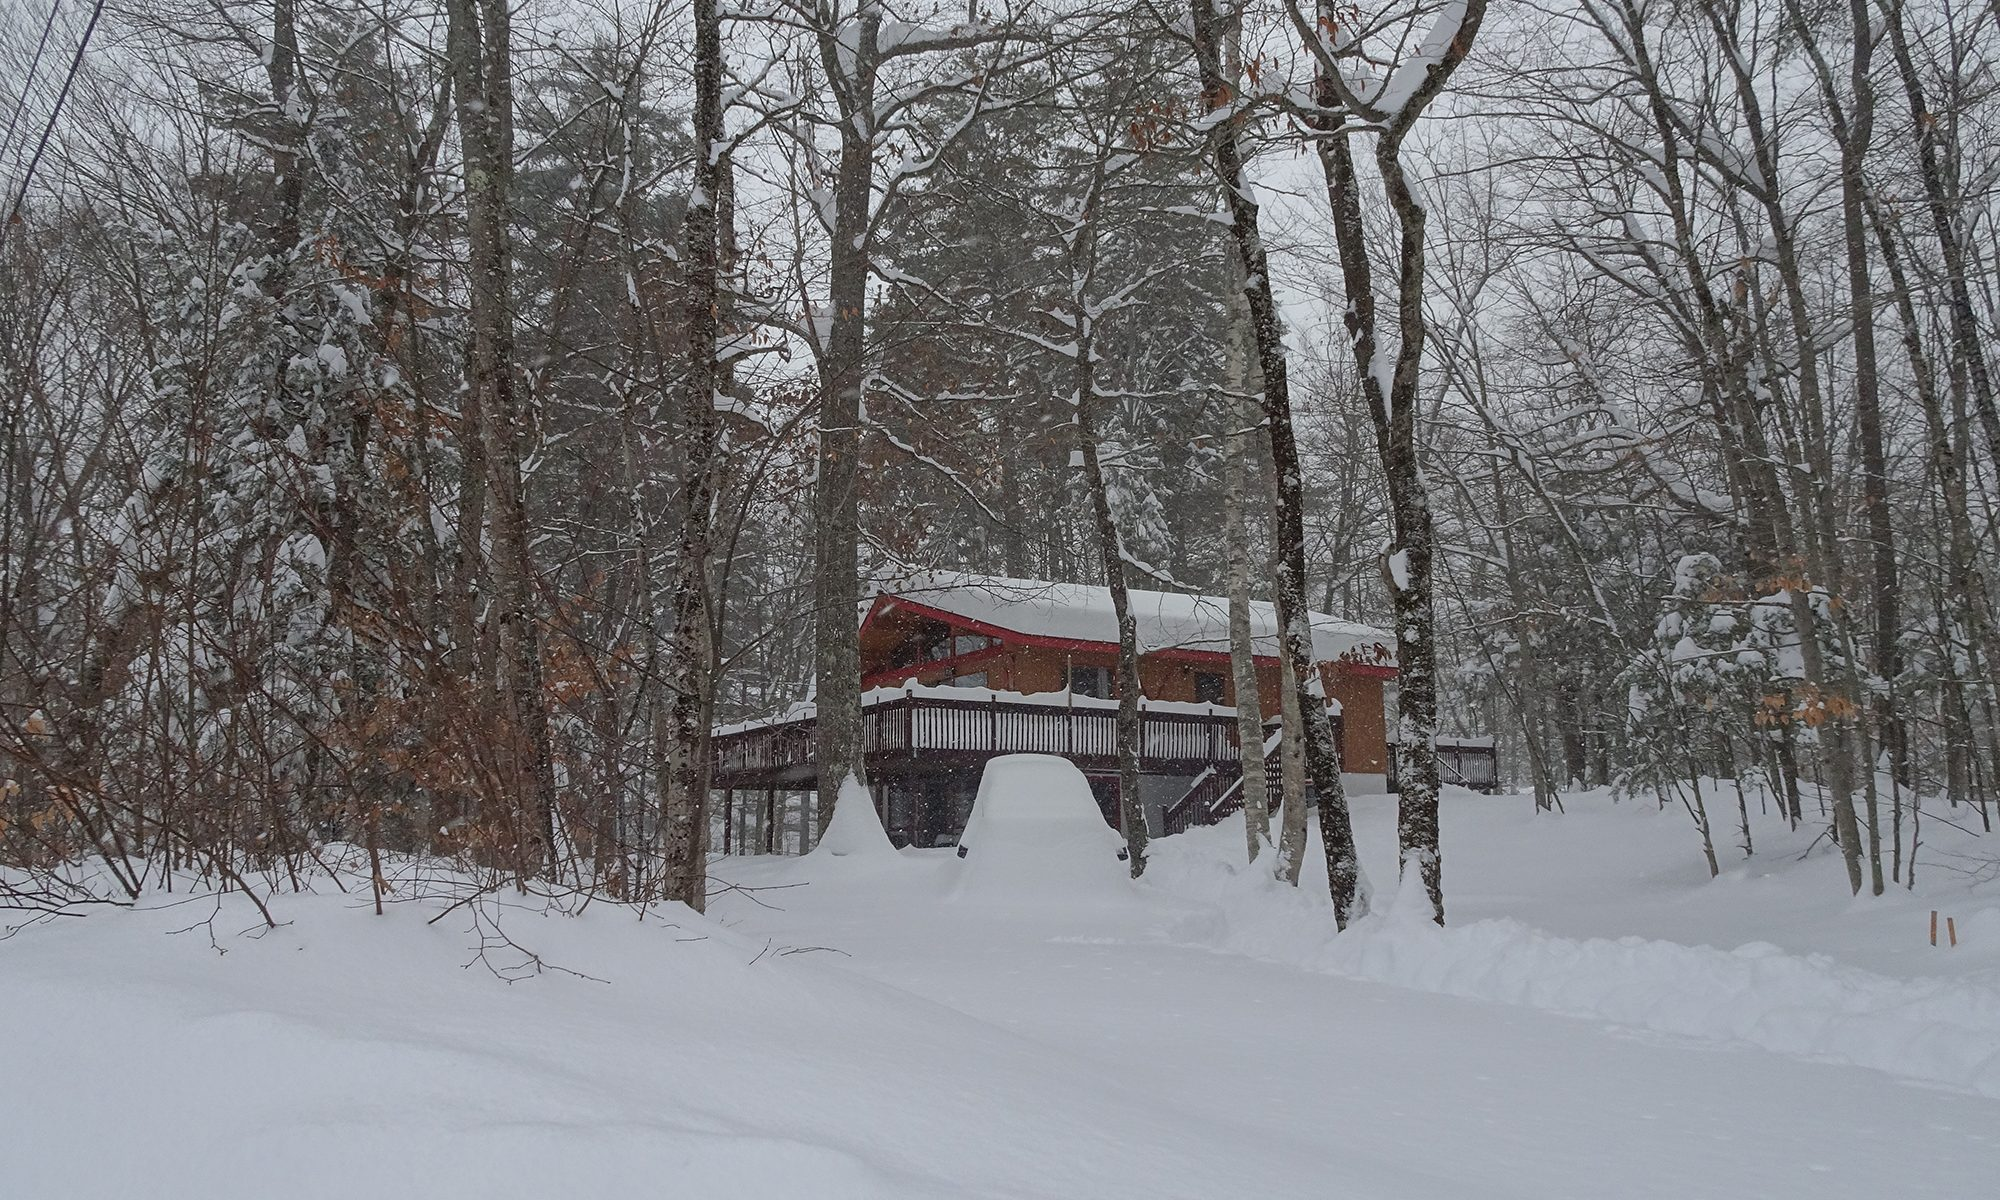 Lake House in snow